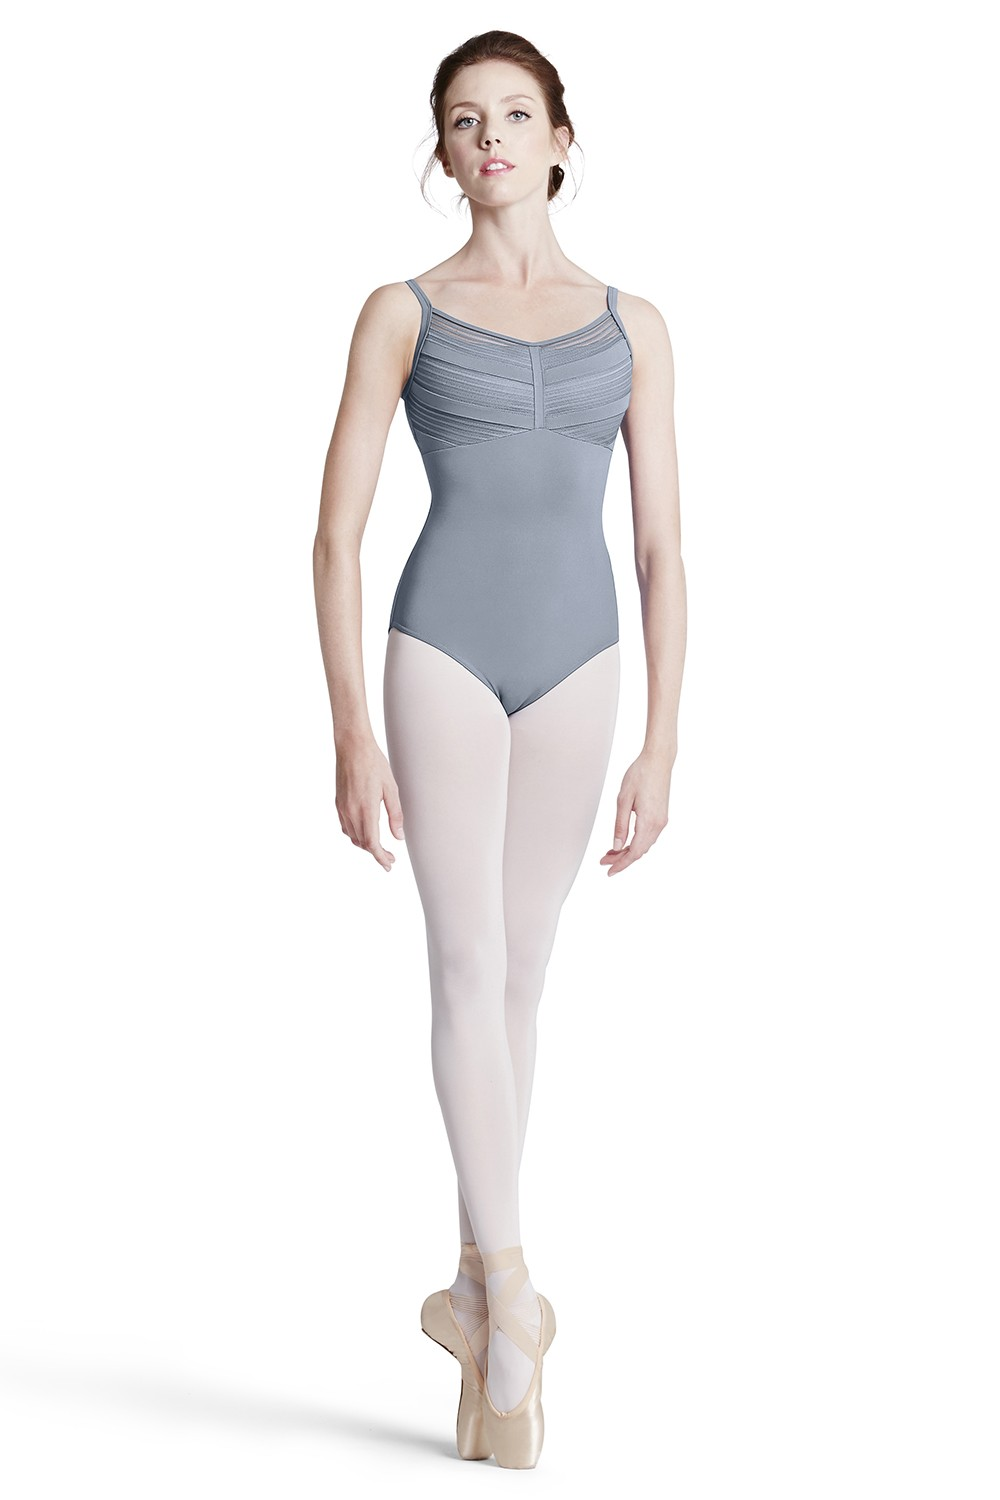 Stripe Lace Cami Leo Women's Dance Leotards